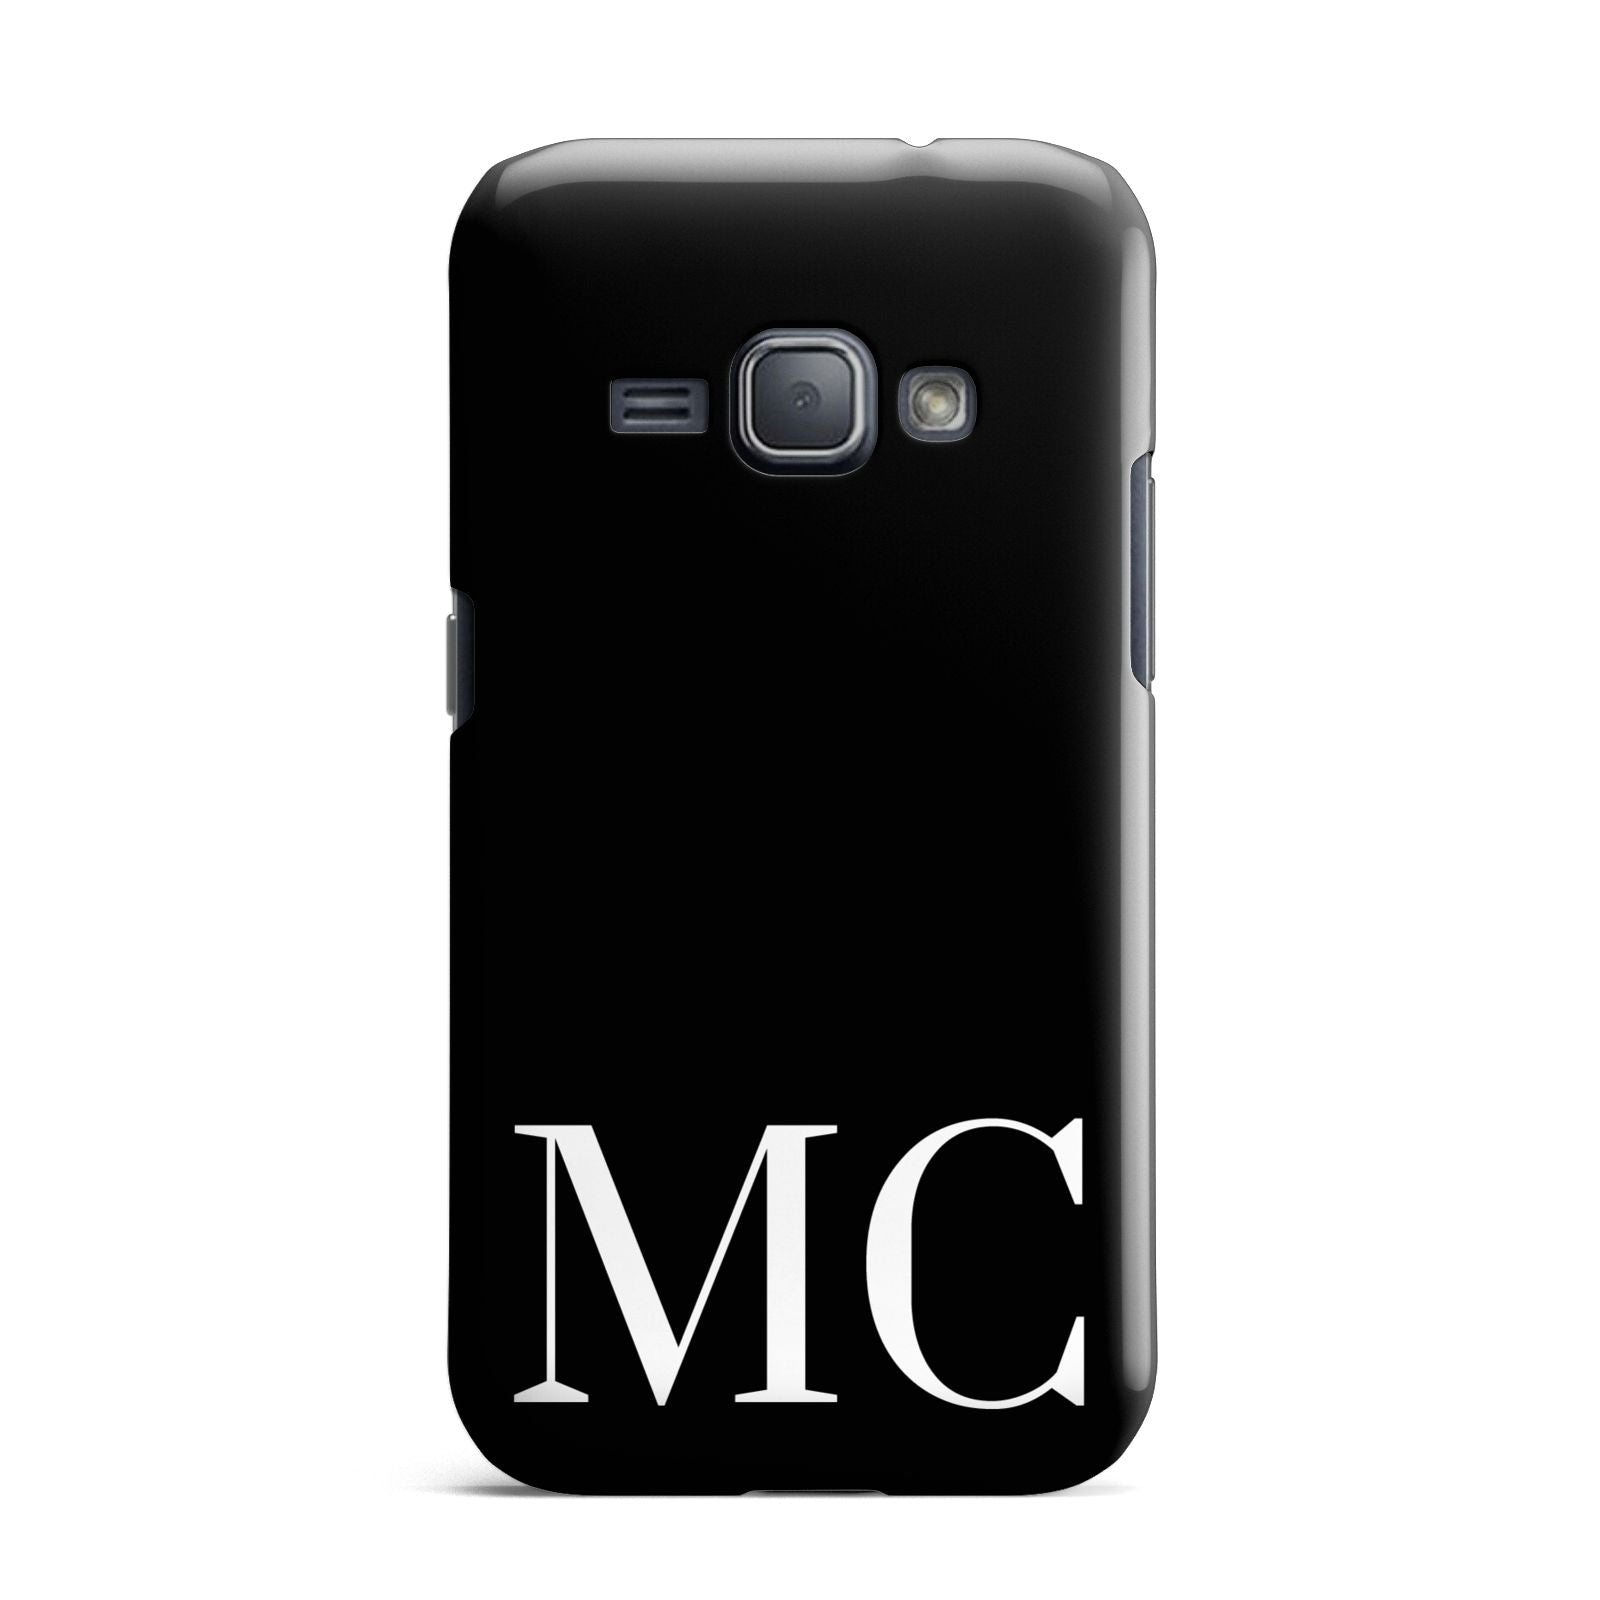 Initials Personalised 1 Samsung Galaxy J1 2016 Case